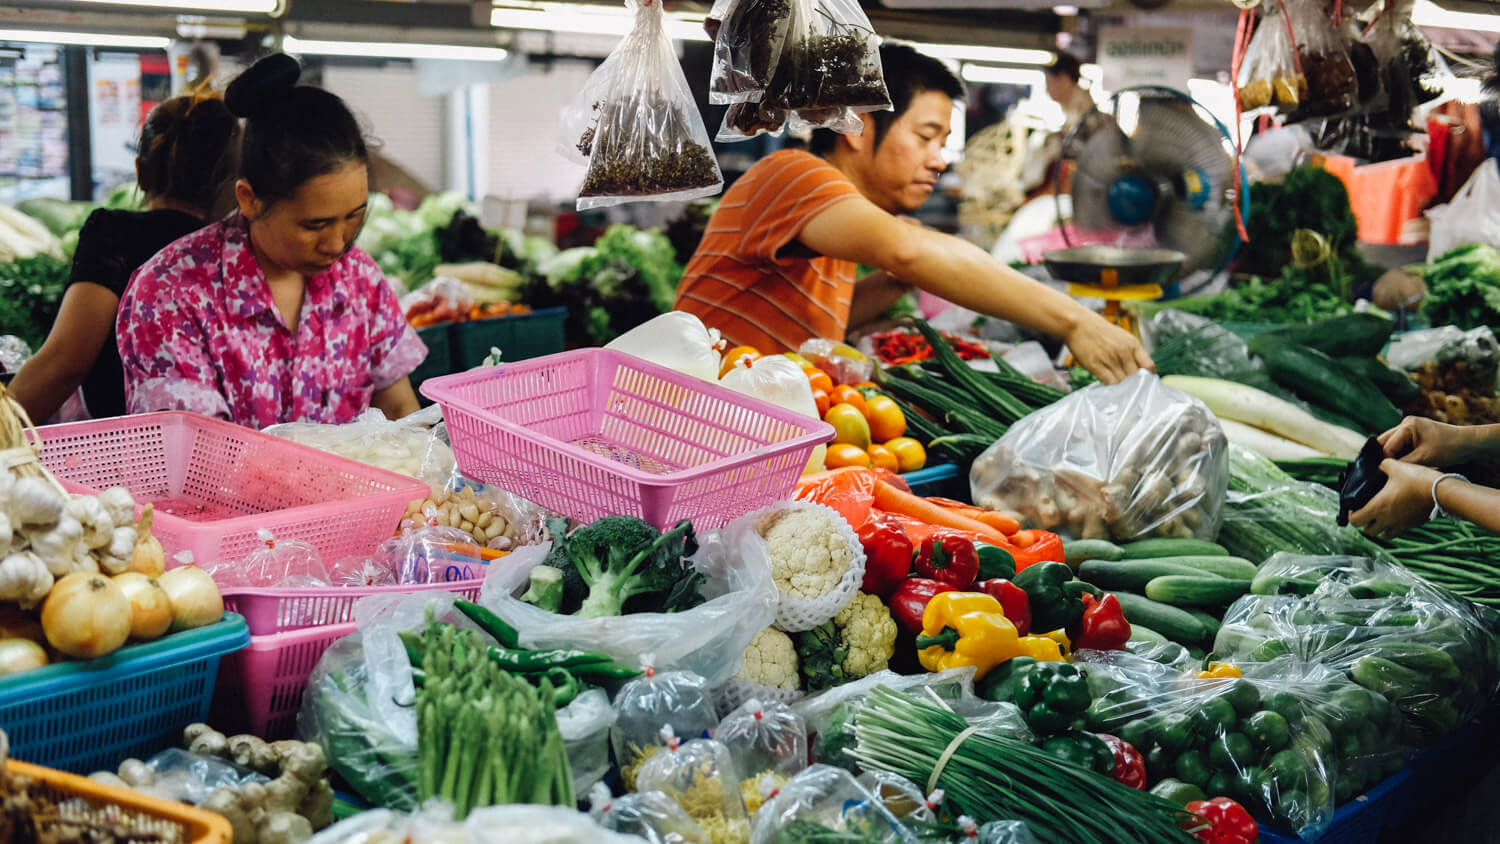 """Market in Chiang Mai. Travel photography and guide by © Natasha Lequepeys for """"And Then I Met Yoko"""". #thailand #travelguide #travelphotography #travelitinerary #fujifilm #foodie #cookingclass"""